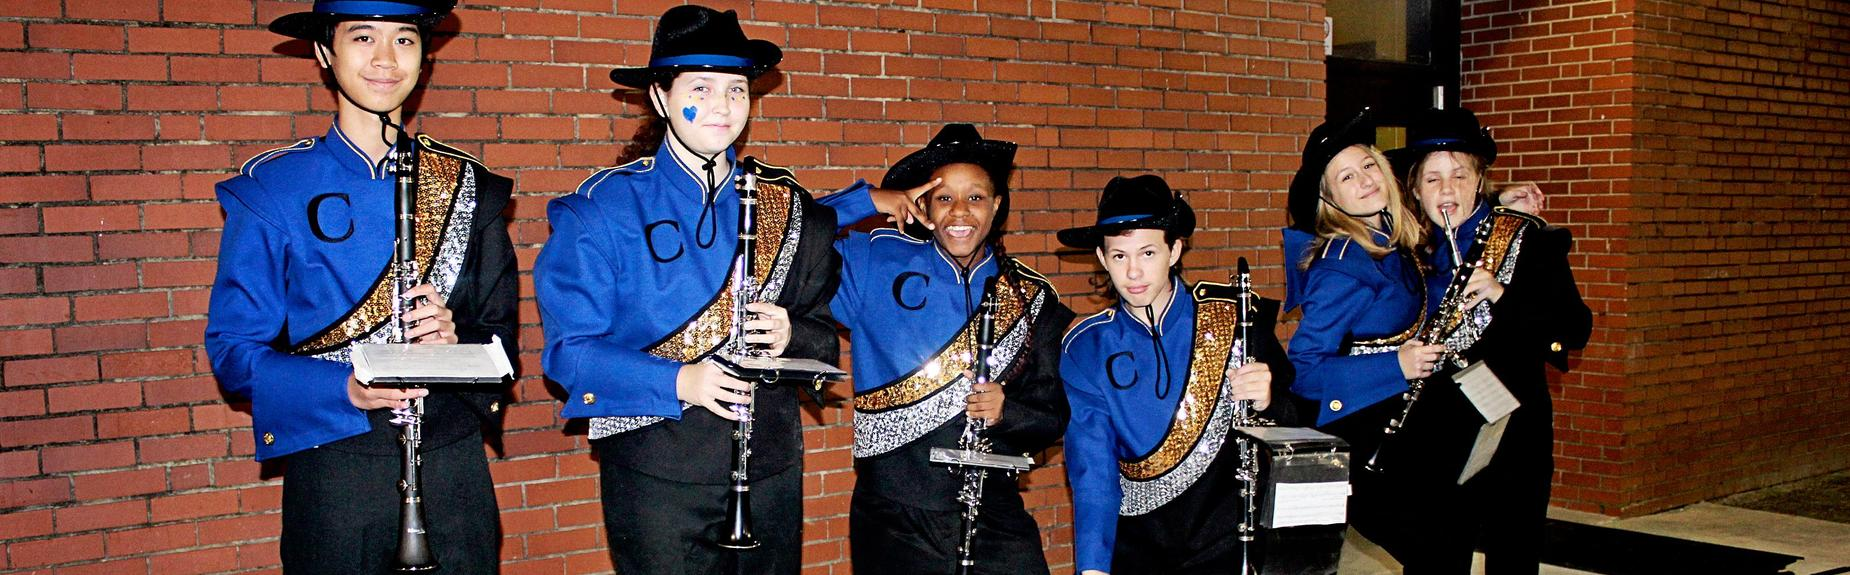 band students holding instruments and smiling